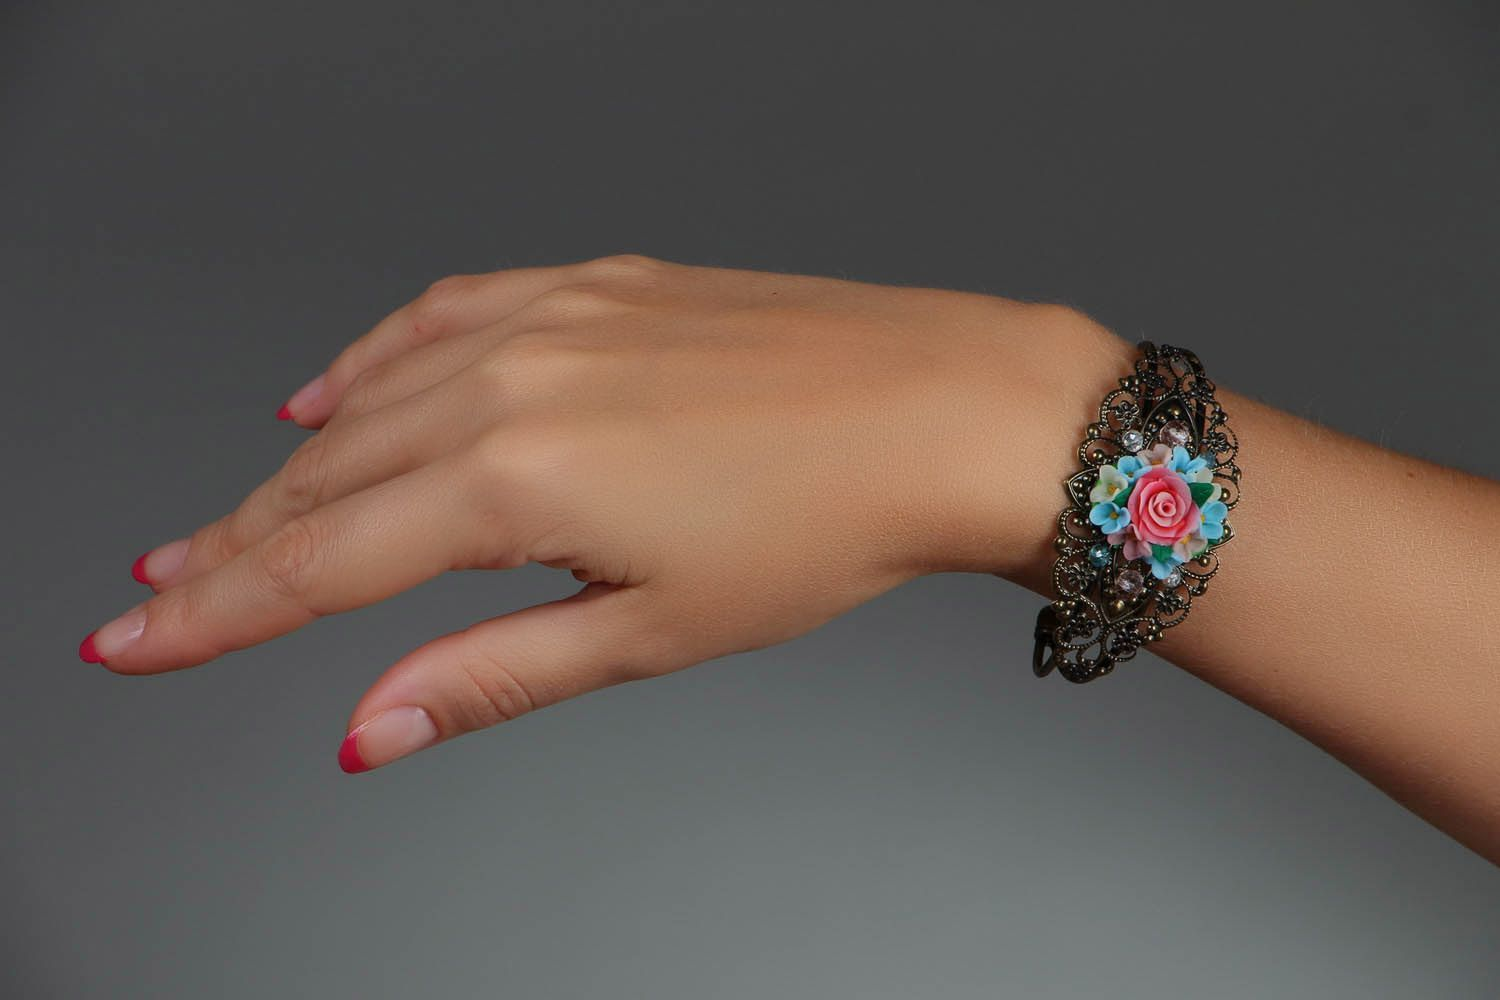 Bracelet made of polymer clay photo 7